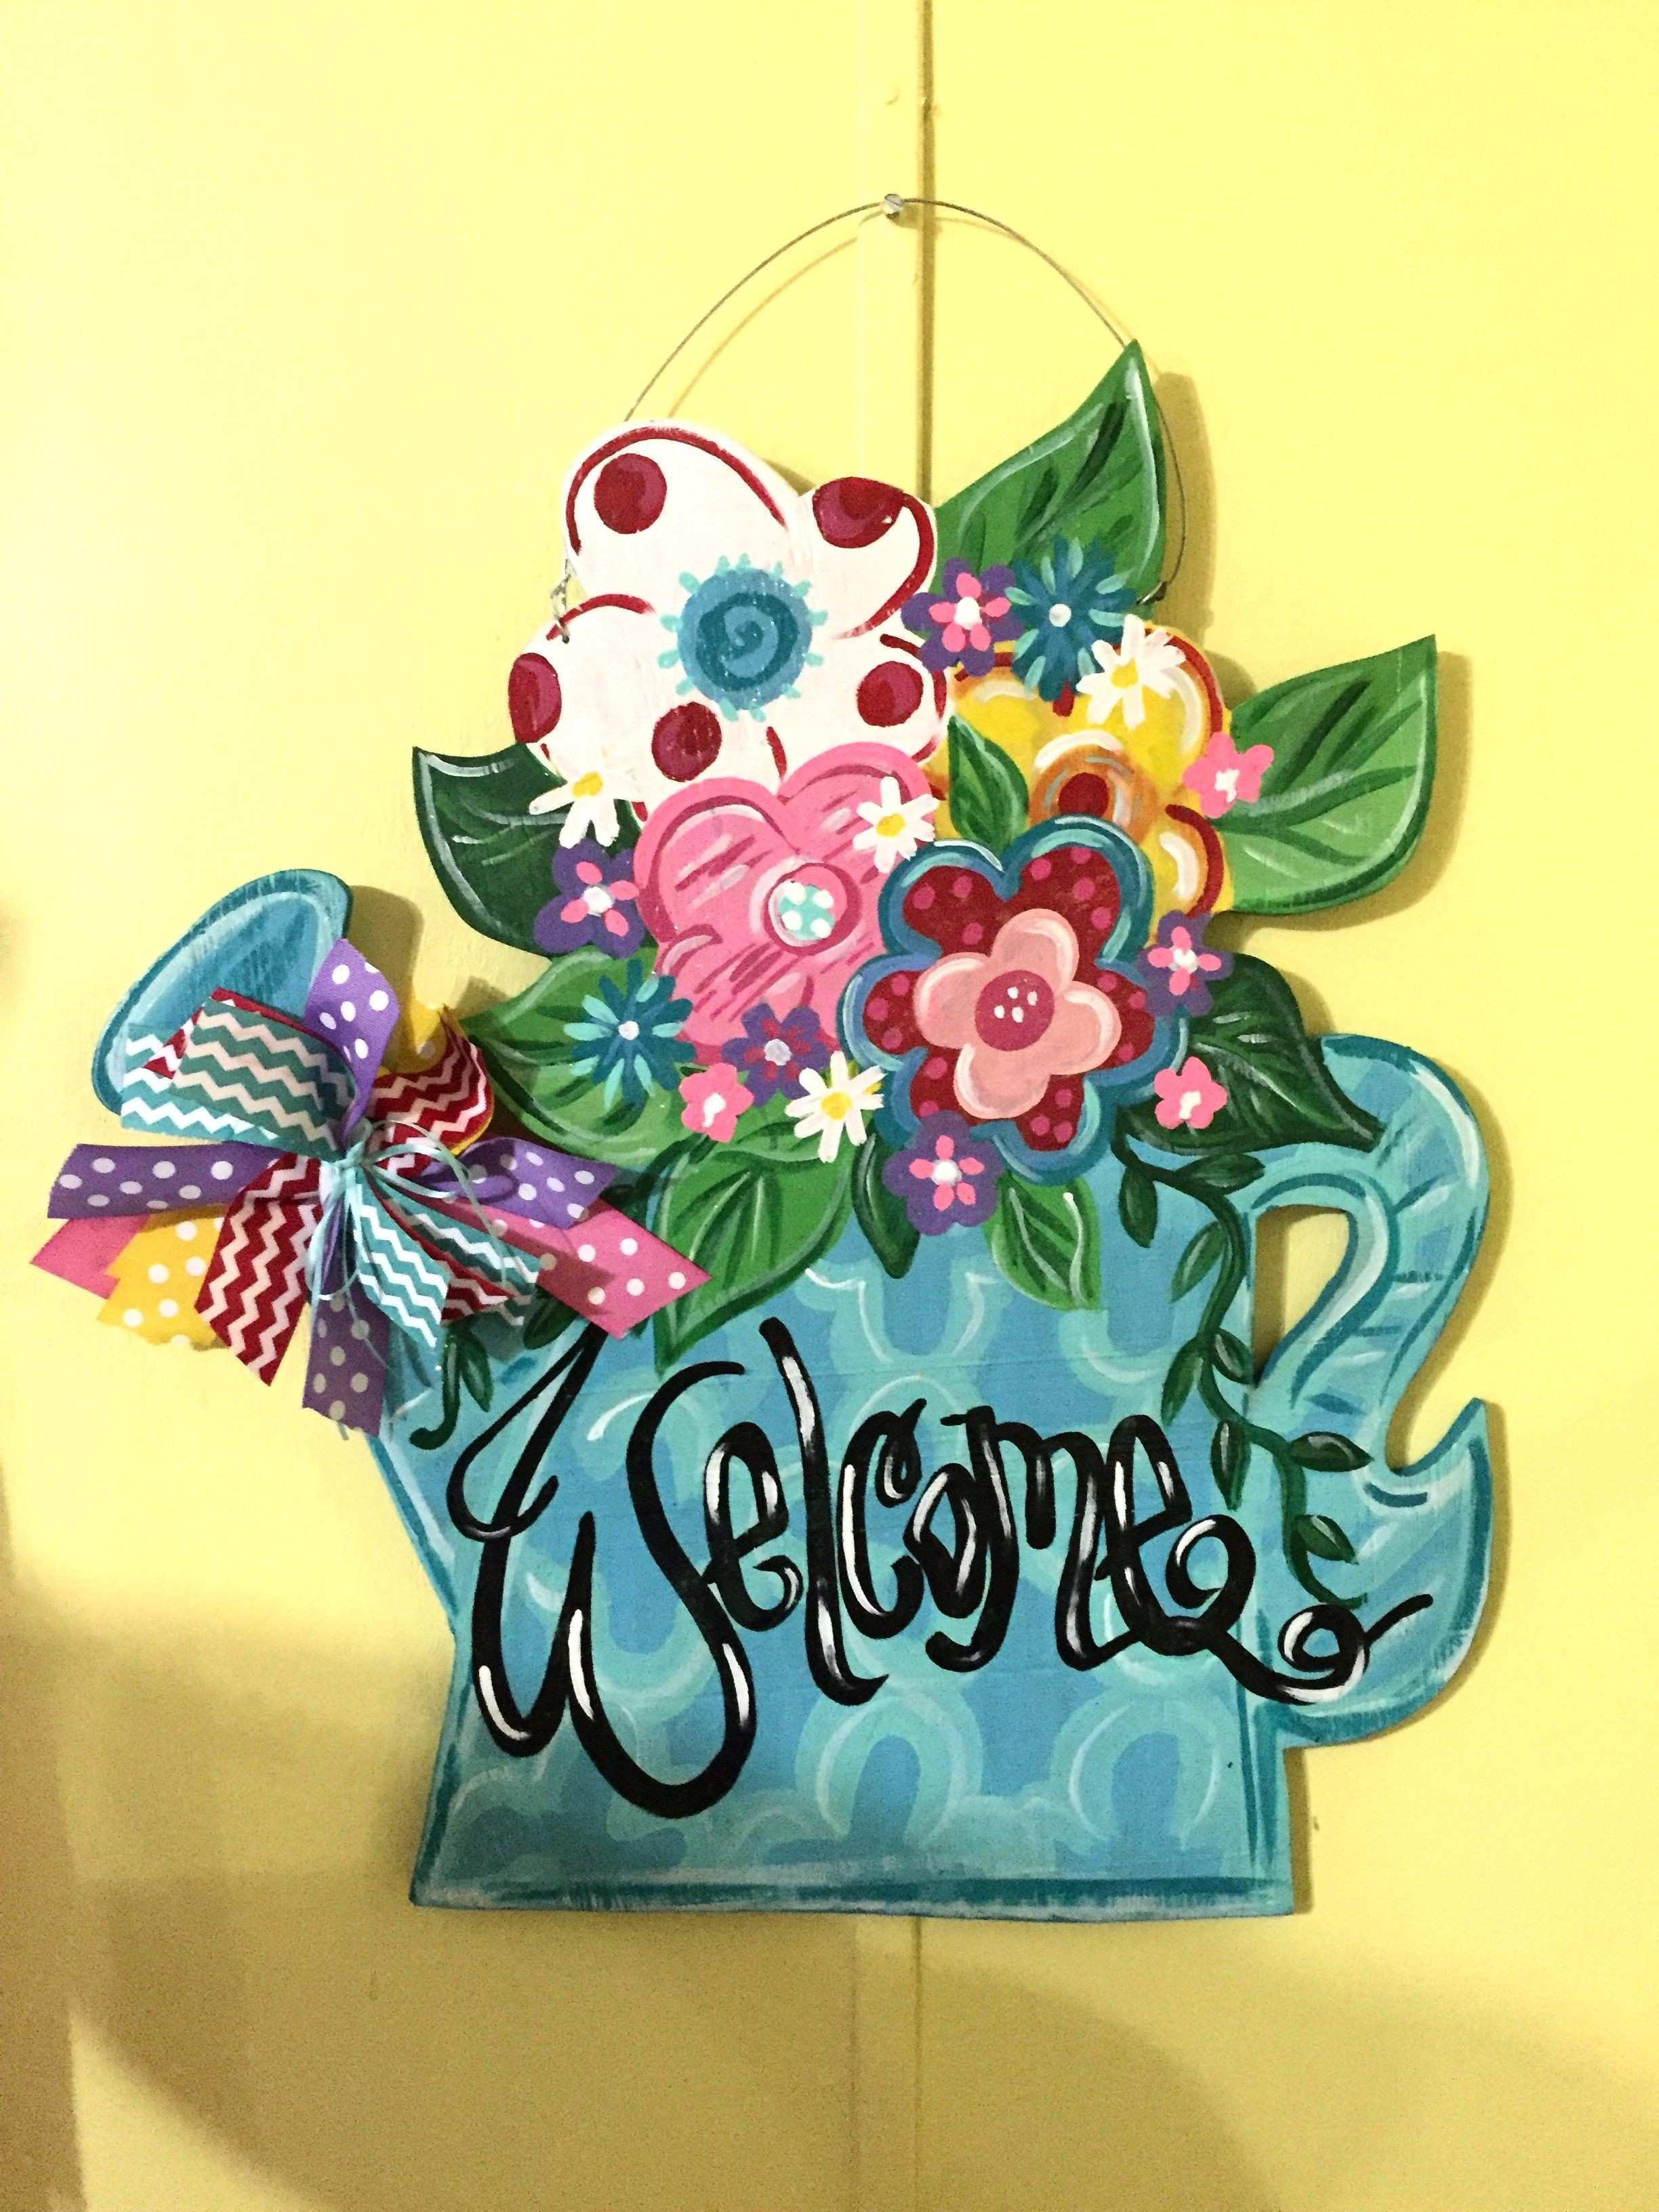 I painted this watering can door hanger for spring